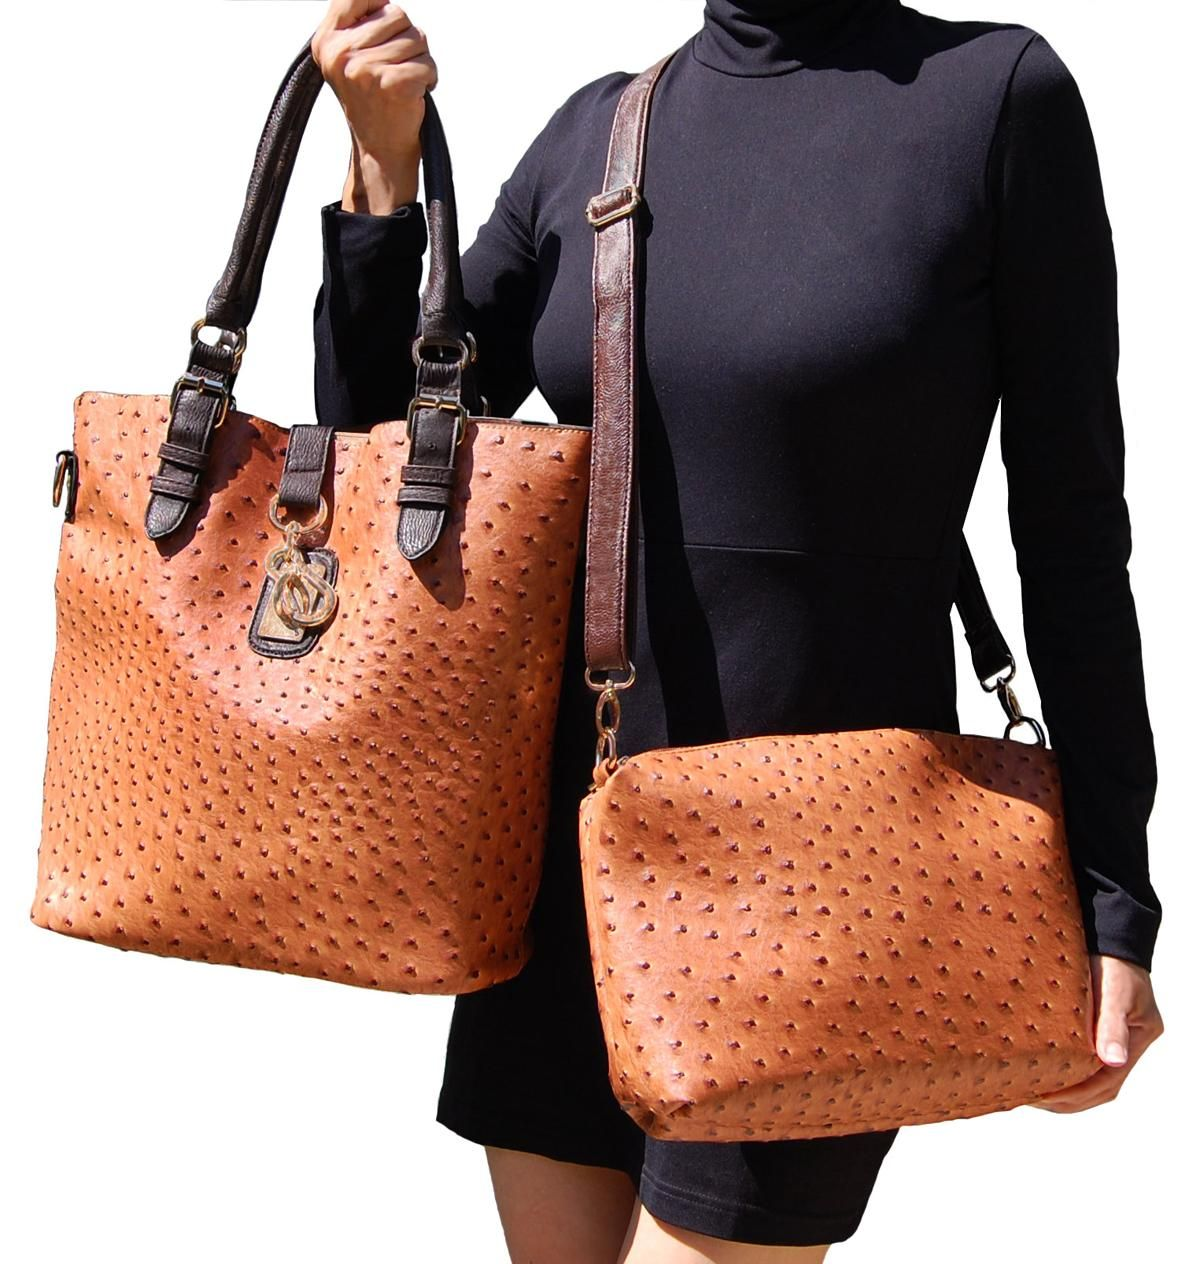 Liz Soto Handbags Booth 2635 Lizsoto Californiagiftshow